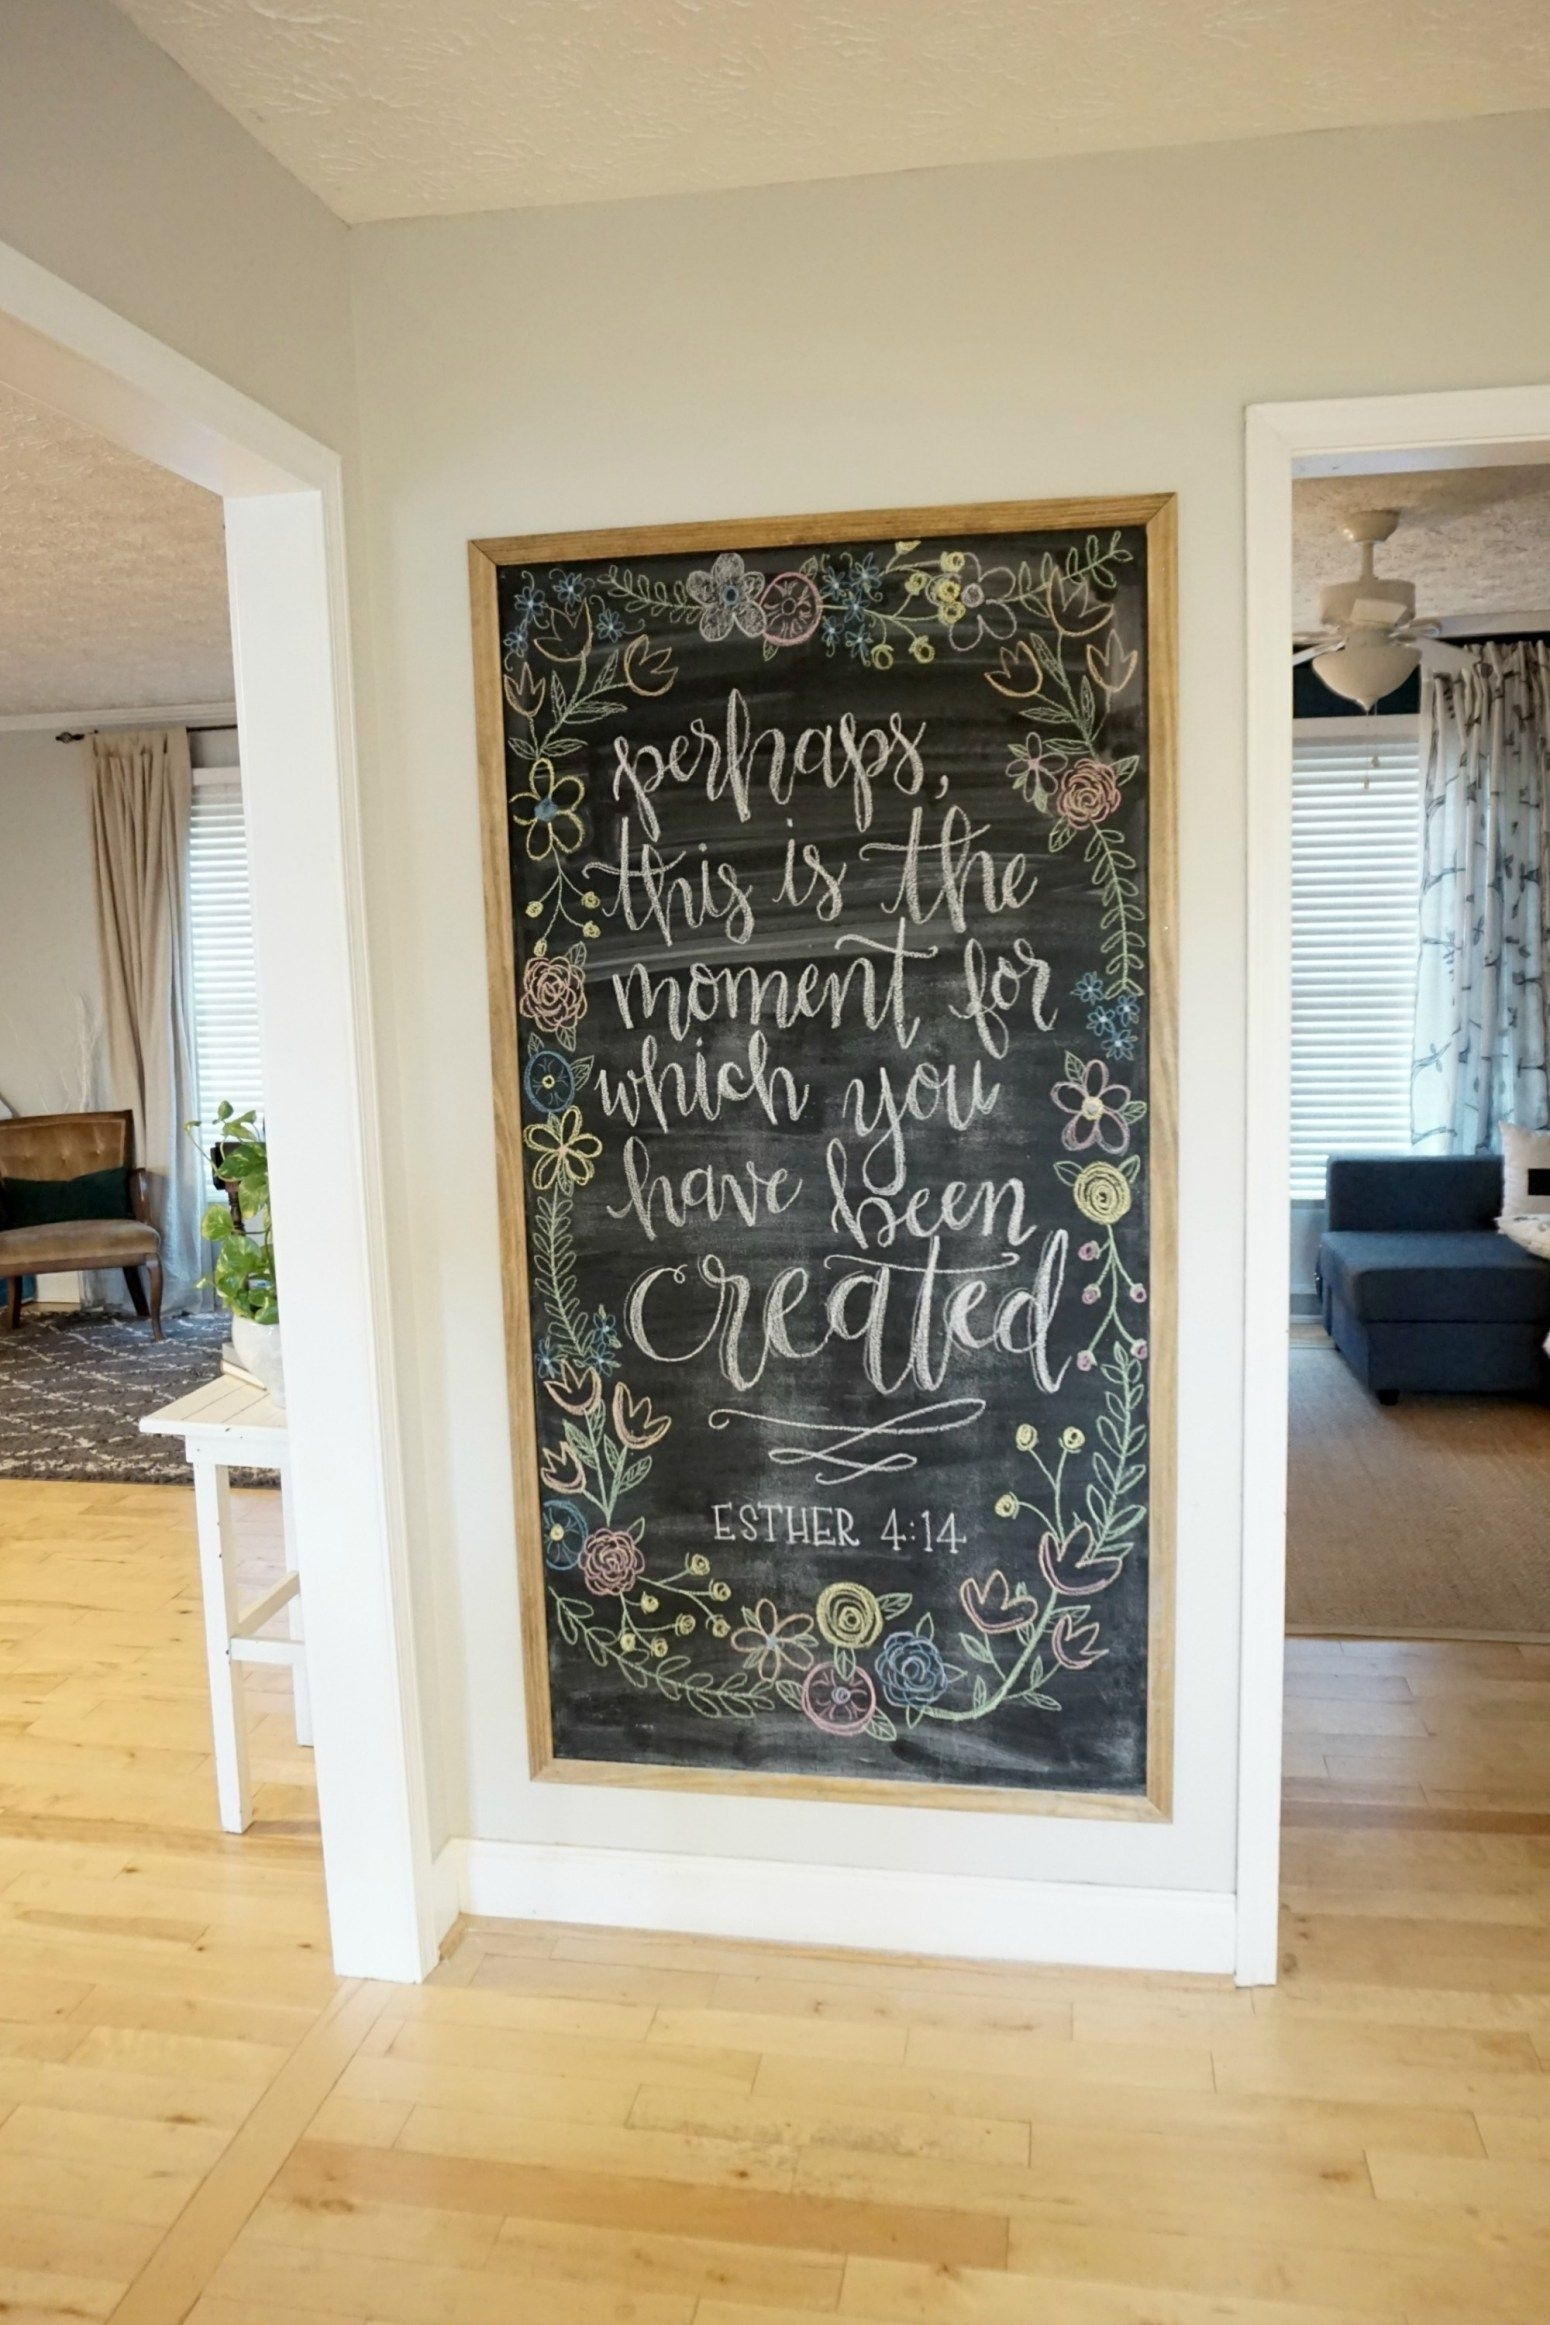 12 Affordable Ideas For Large Wall Decor | Chalkboard Inspirations in Affordable Wall Art (Image 2 of 20)